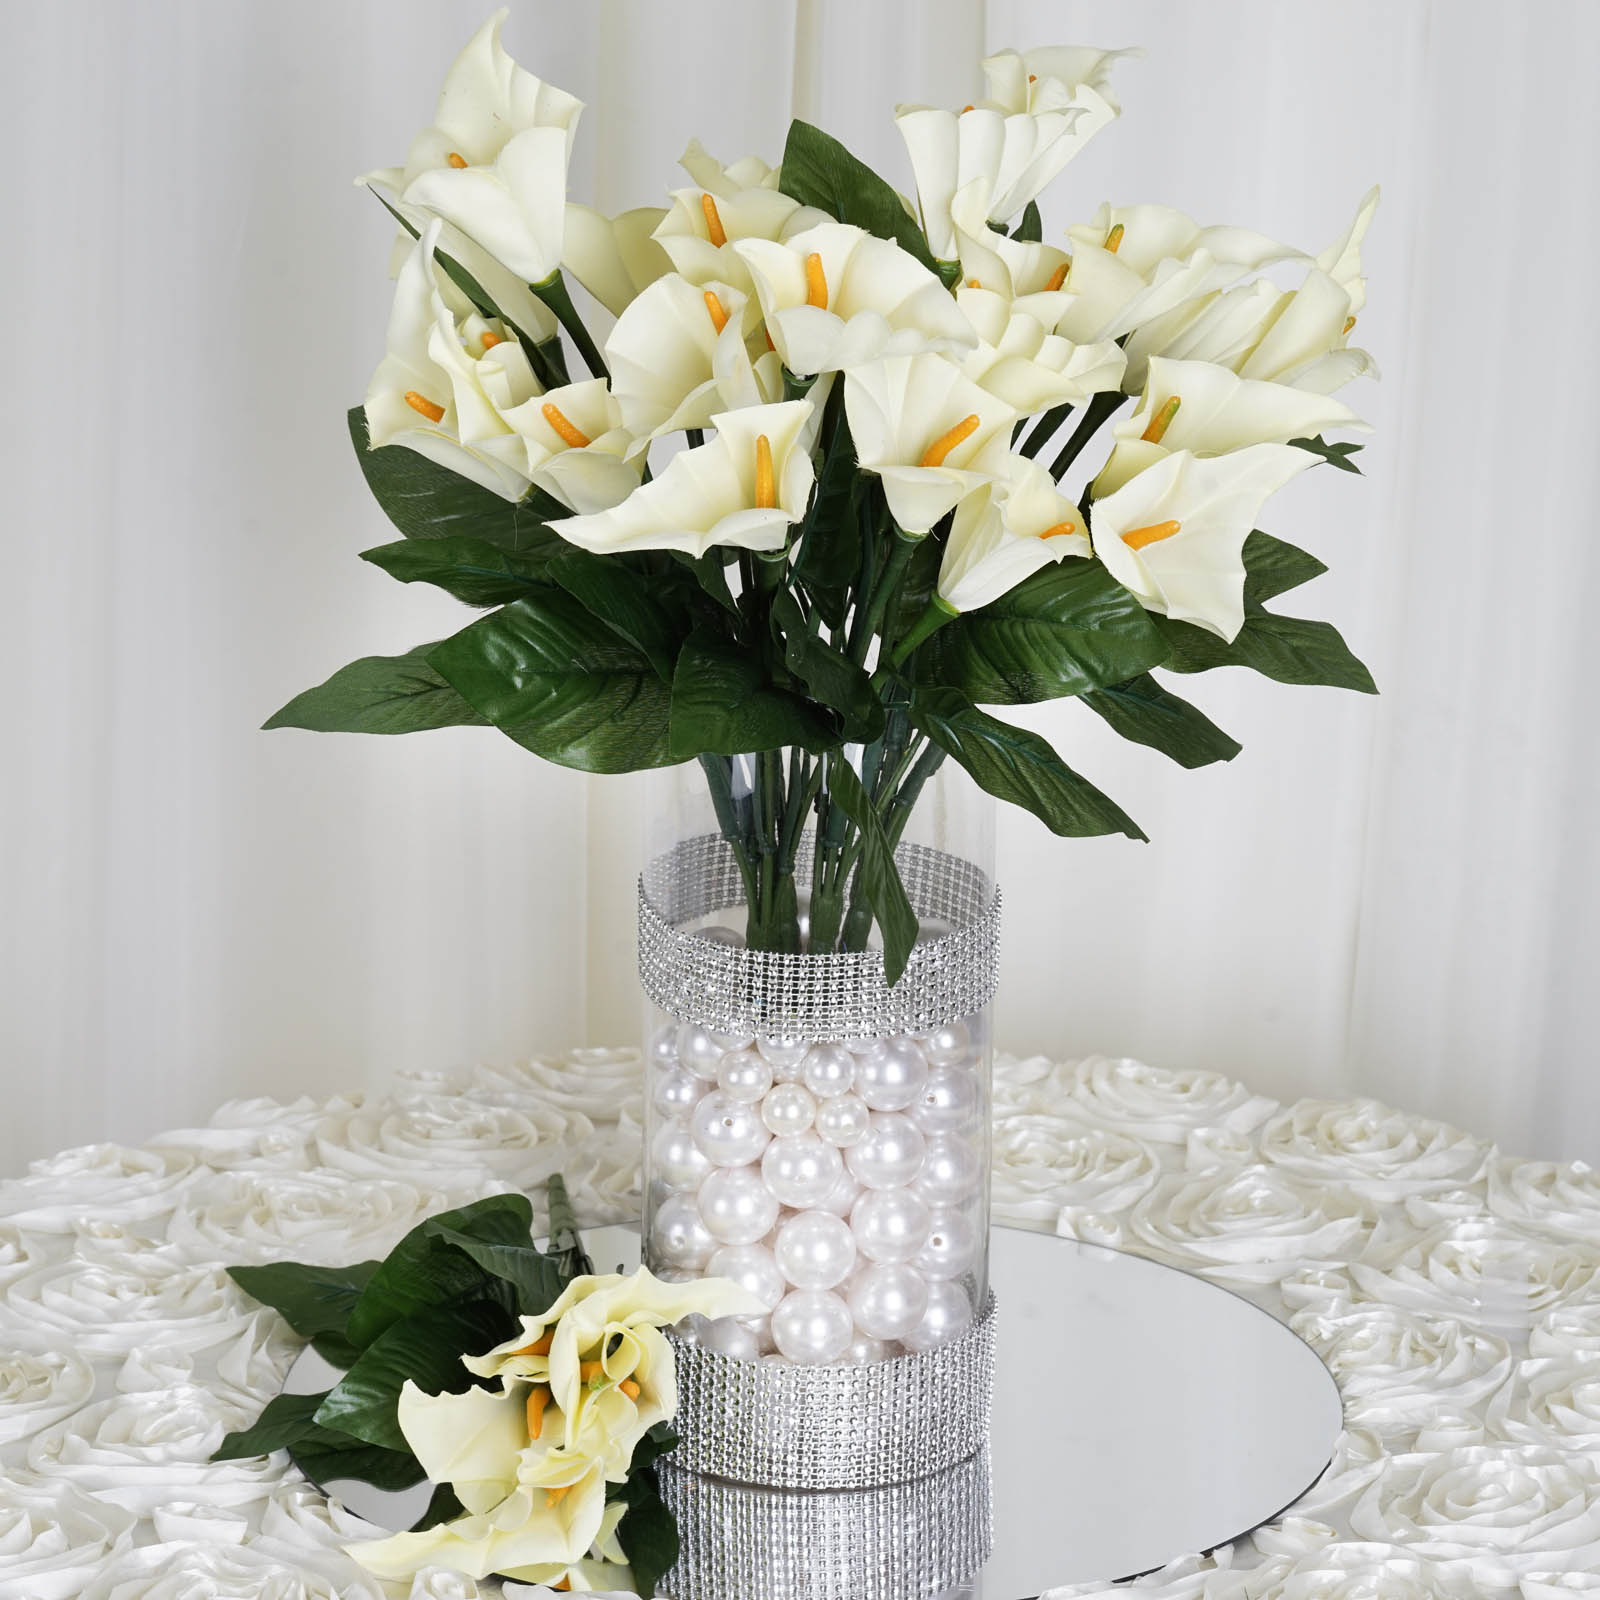 84 Silk Calla Lily Flowers For Wedding Bouquets Centerpieces